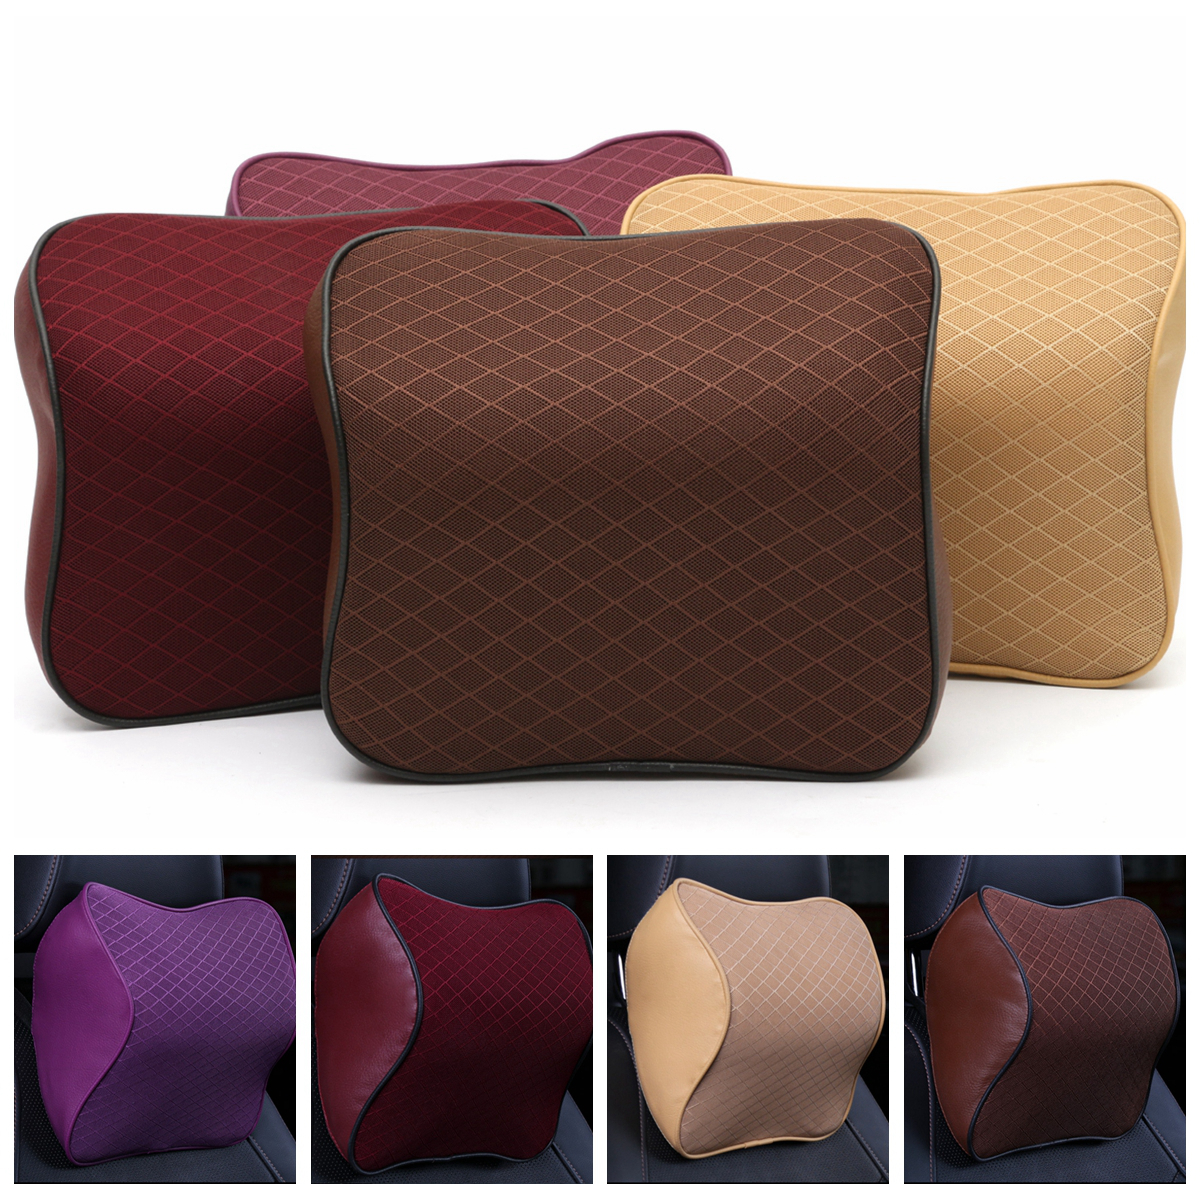 Durable Car Seat Headrest Pillow Breathable Mesh PU Leather Pad Memory Foam Neck Cushion (Color: Beige, Wine red, Coffee, Purple)25x23x12cm/ 9.84x9.05x4.72''